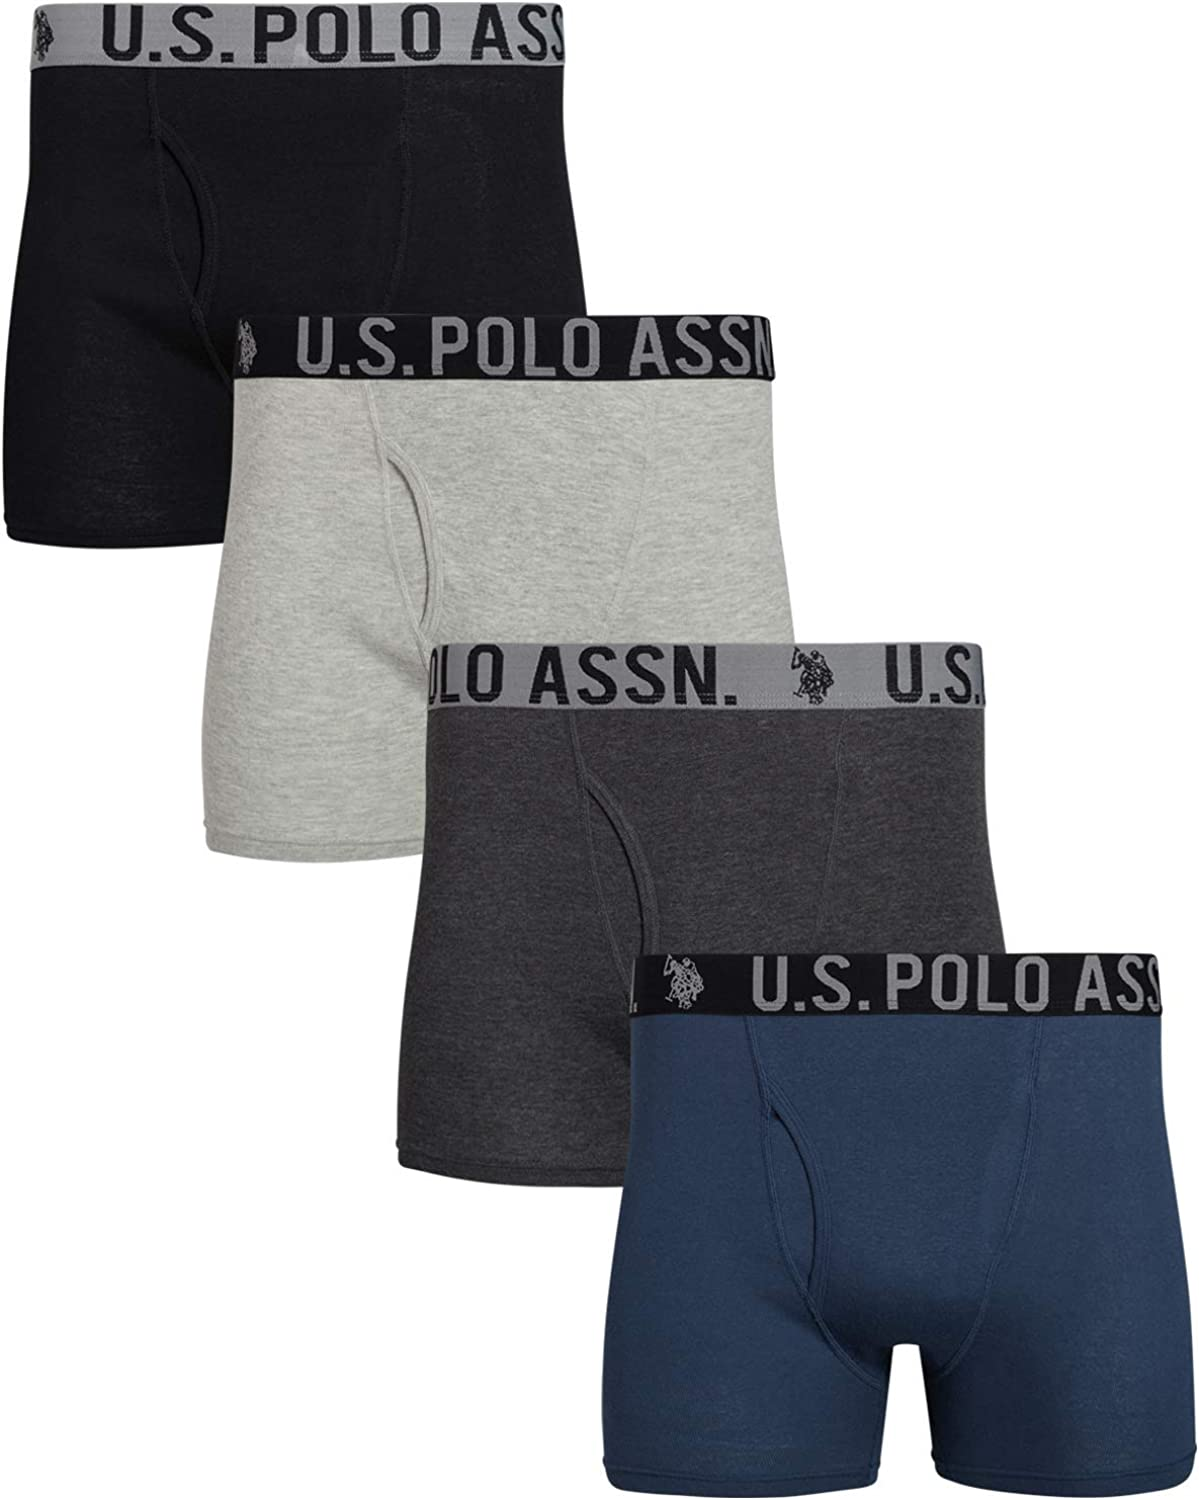 U.S. Polo Assn. Men's Cotton Boxer Briefs Underwear with Functional Fly (4 Pack)